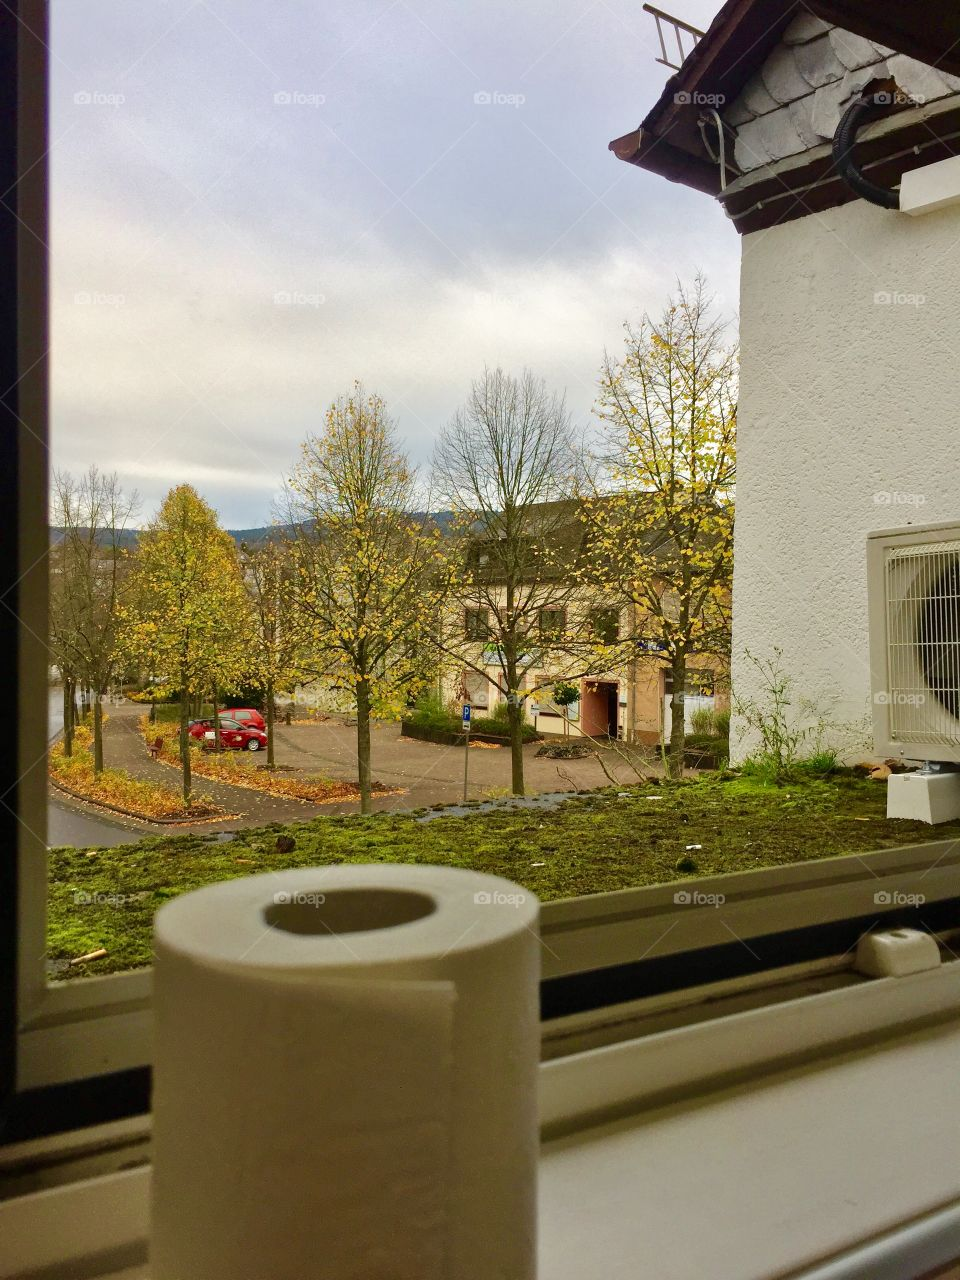 Some of the best views come from sitting on a thrown.  Morbach , Germany